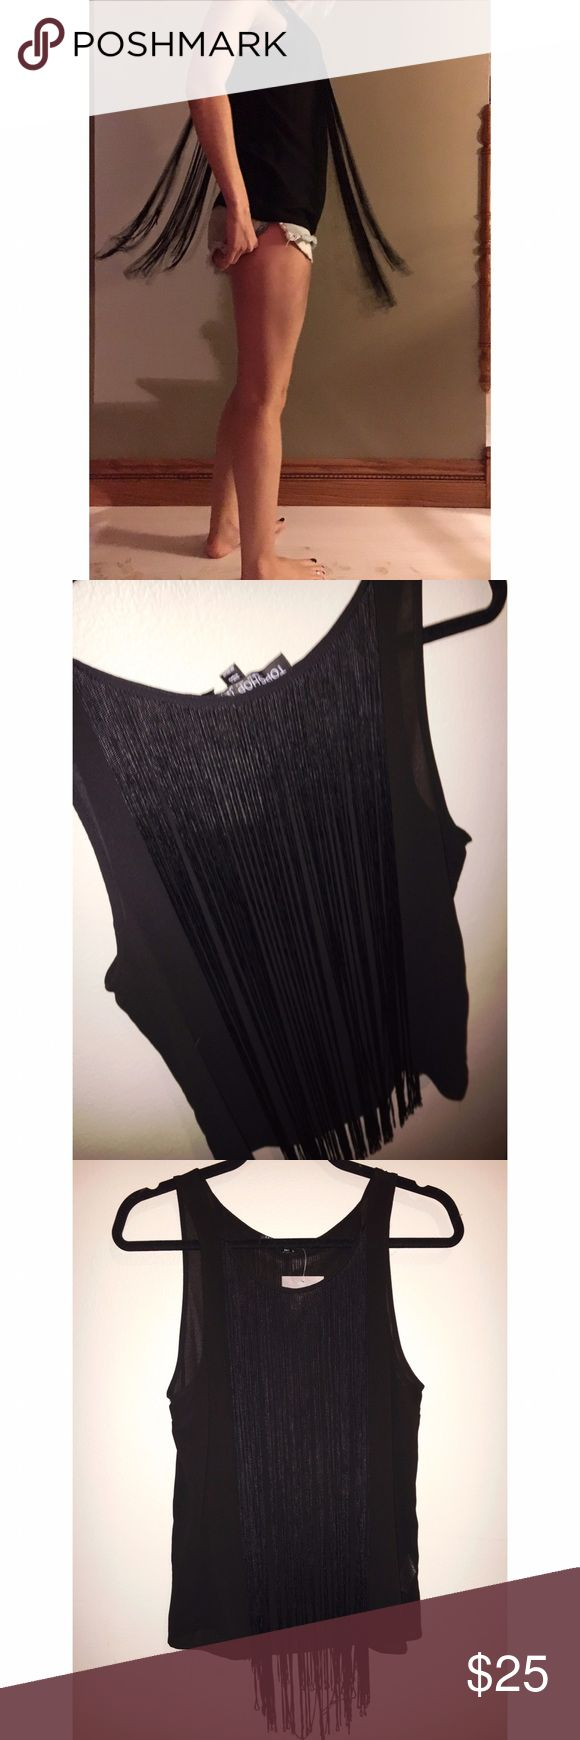 NWT Topshop fringe tank top This top is so fun and too cute on! It's from the petite line but I think it could also work with a regular size 2. 100% poly. Thank you for looking! Topshop Tops Tank Tops